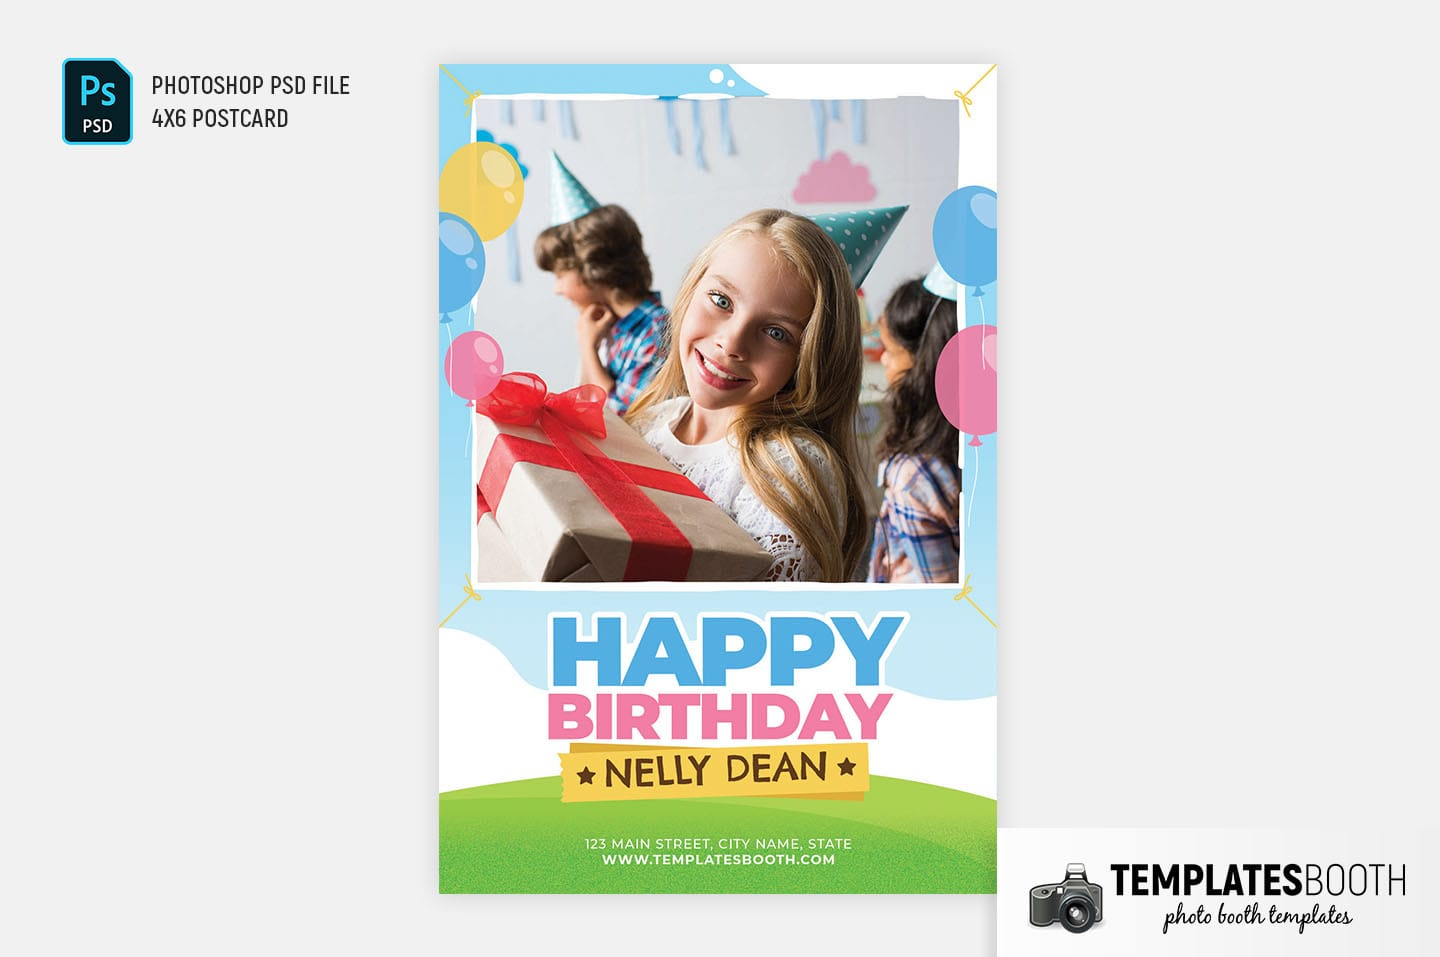 Happy Birthday Photo Booth Template (4x6 Postcard)